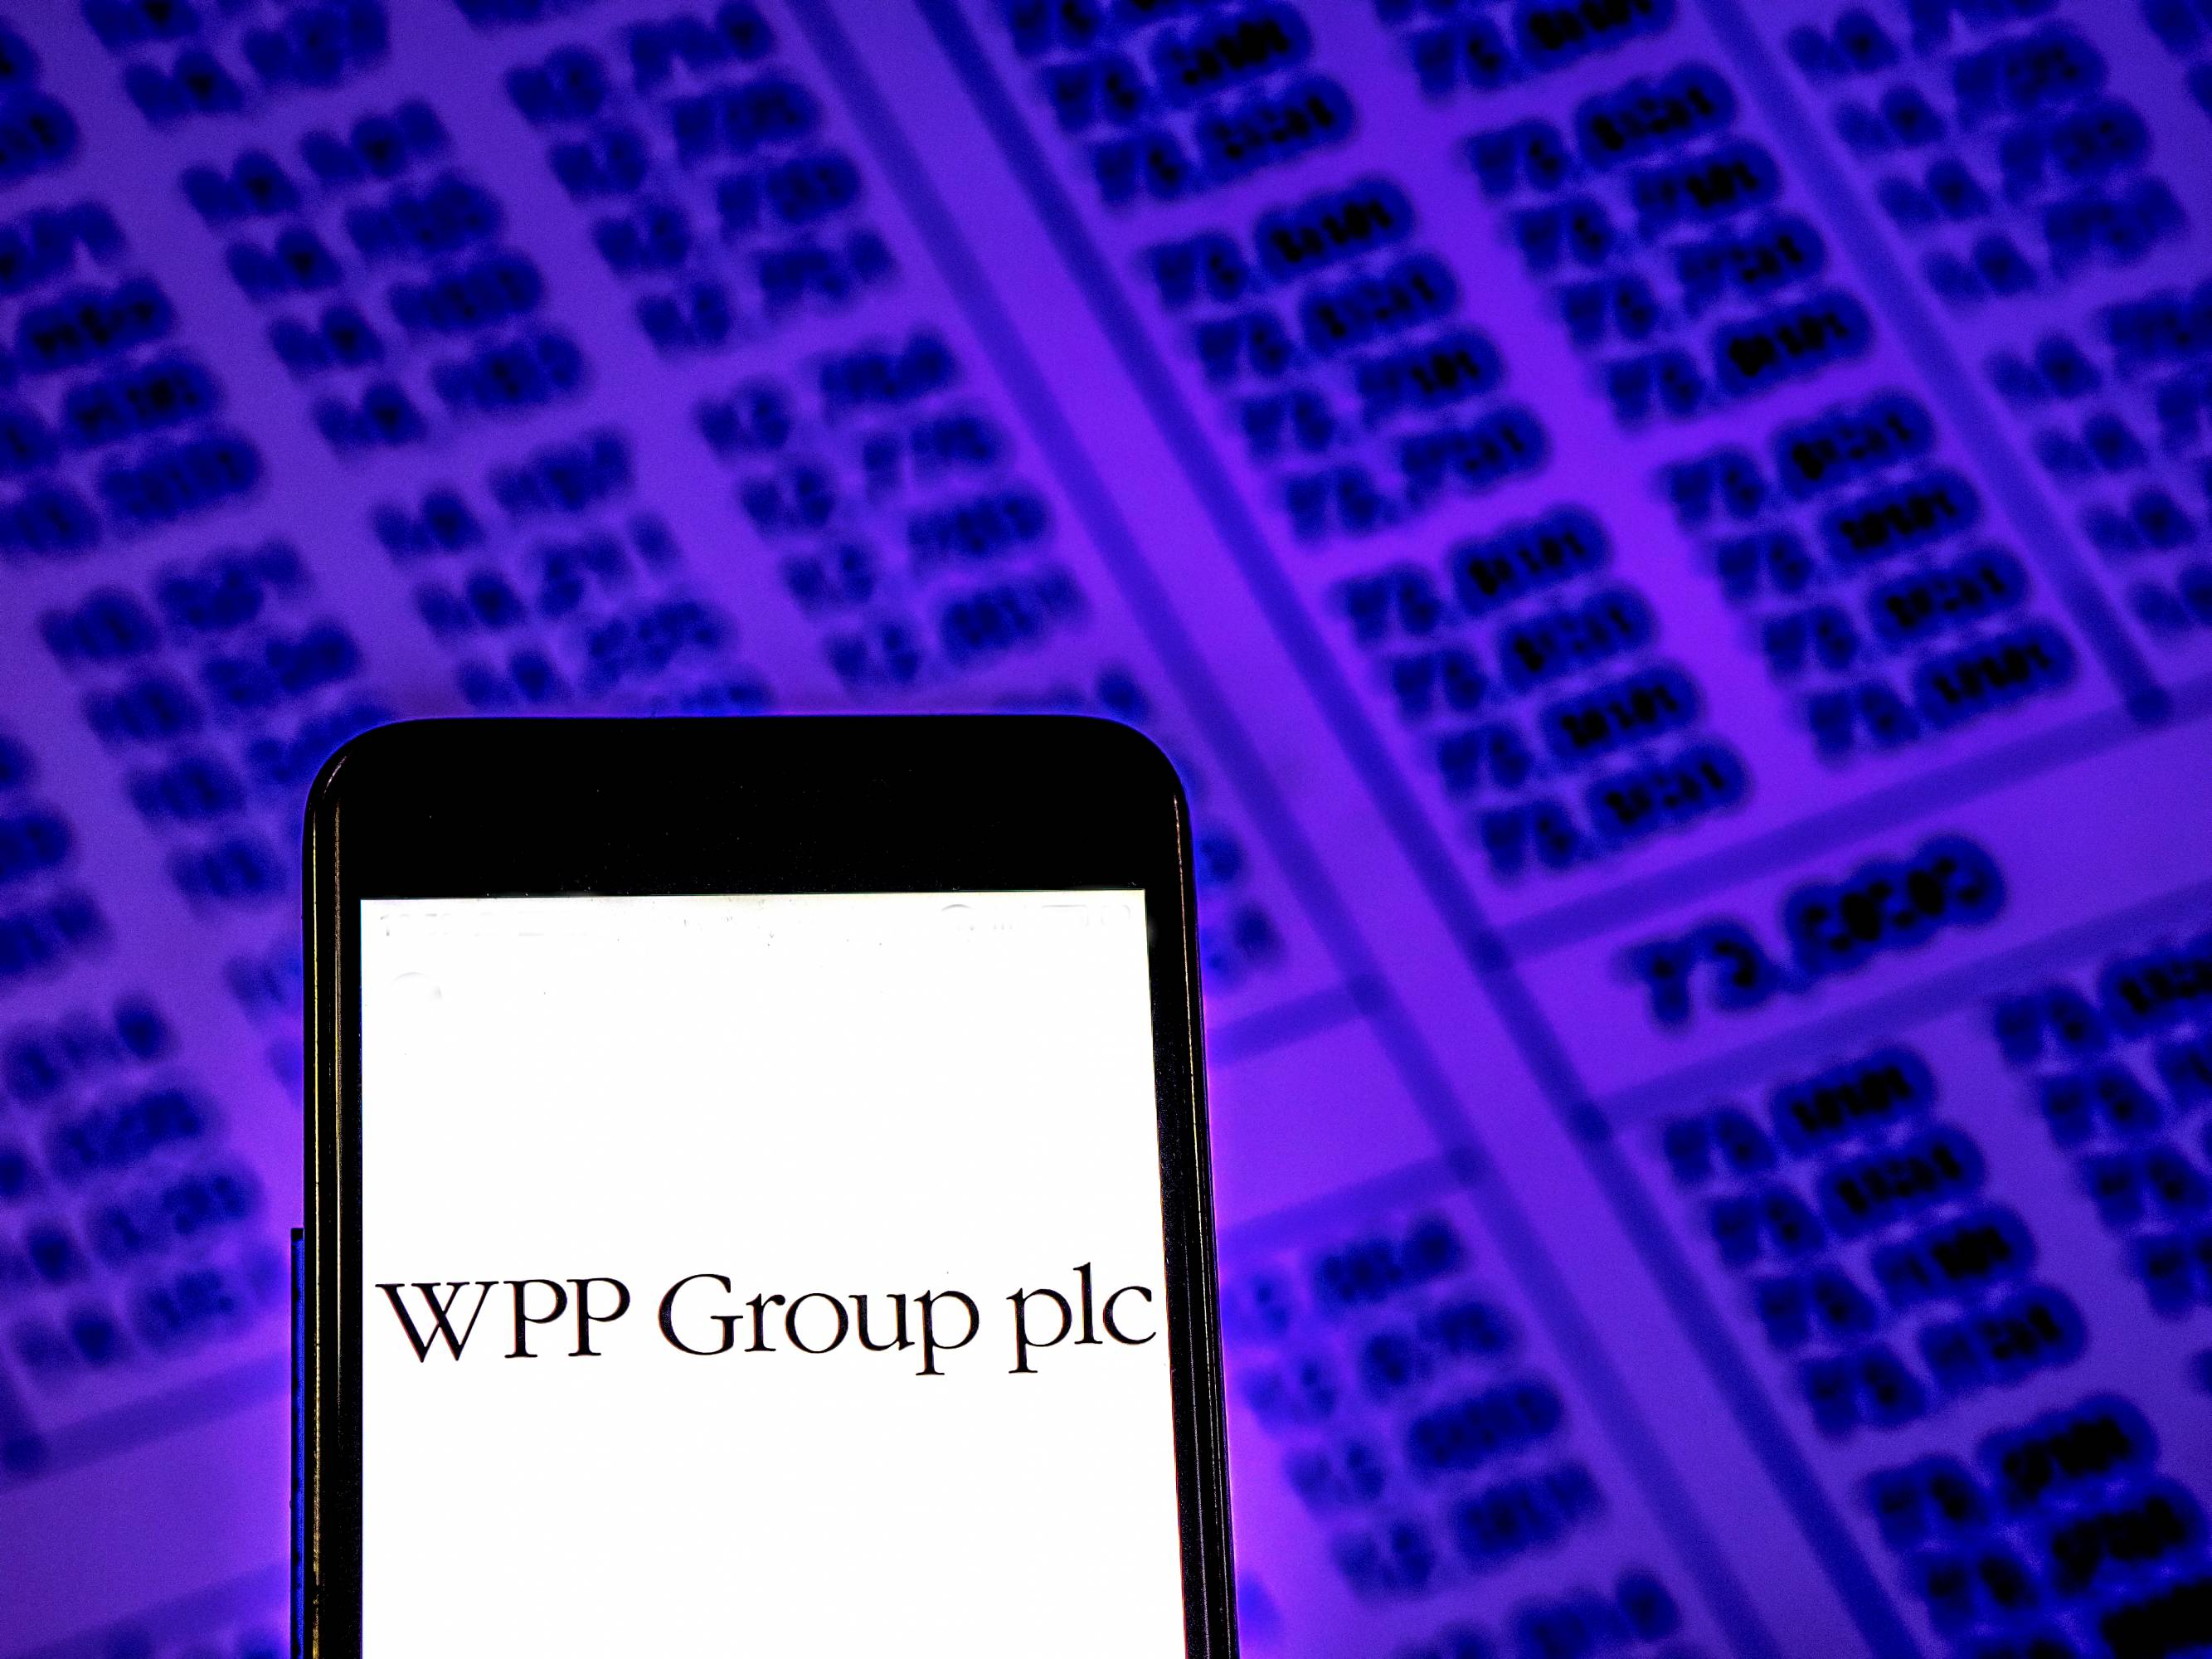 WPP Group plc Public relations company logo seen displayed